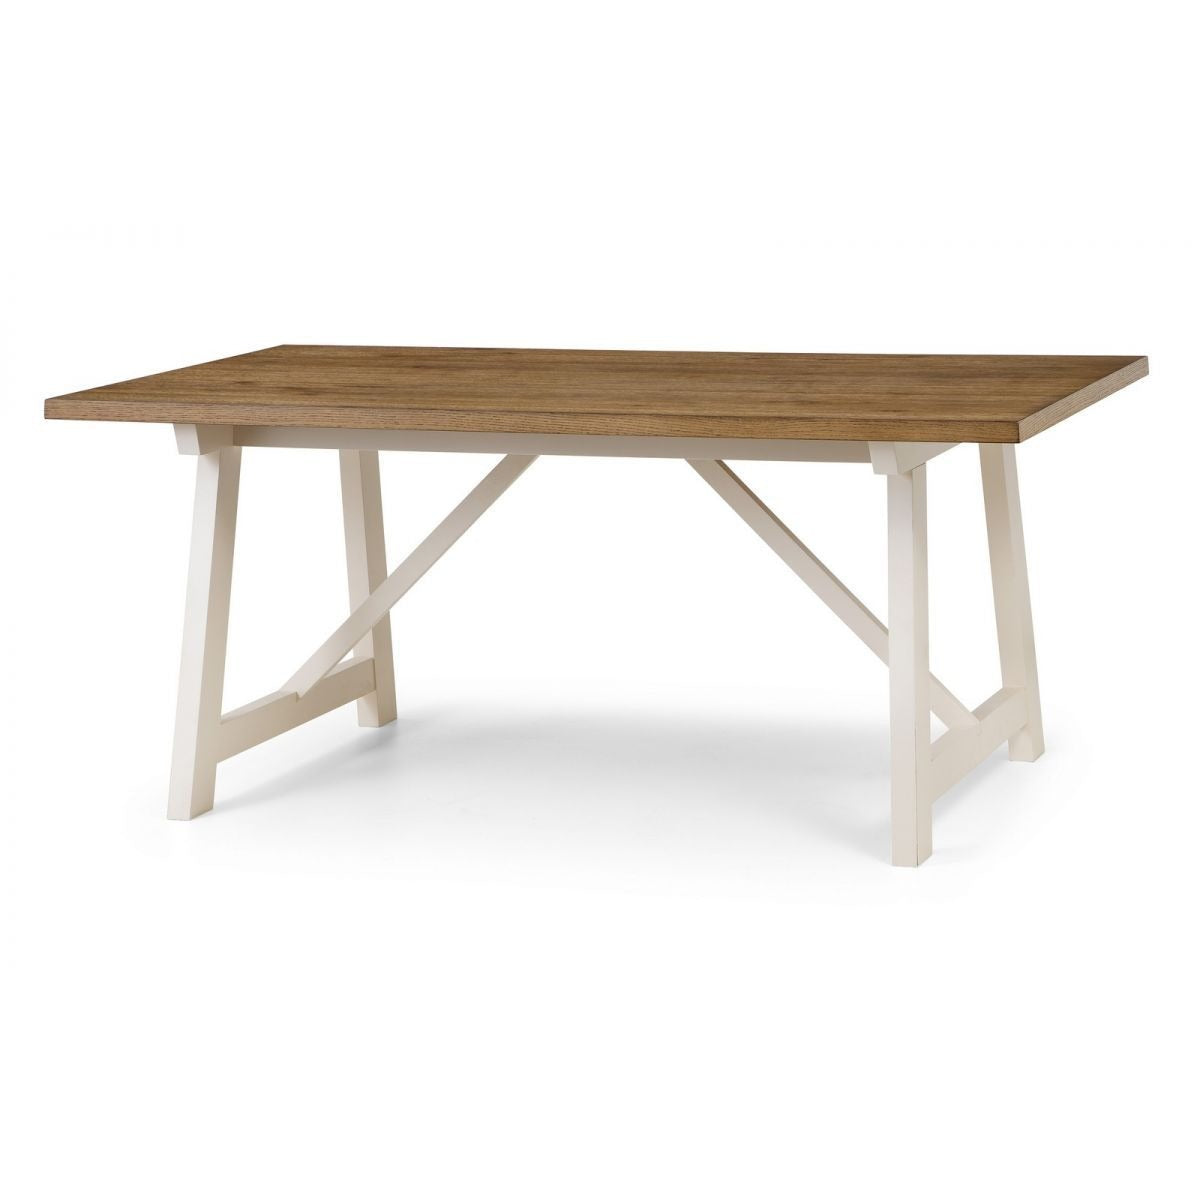 Pembroke Dining Table - Perfectly Home Interiors